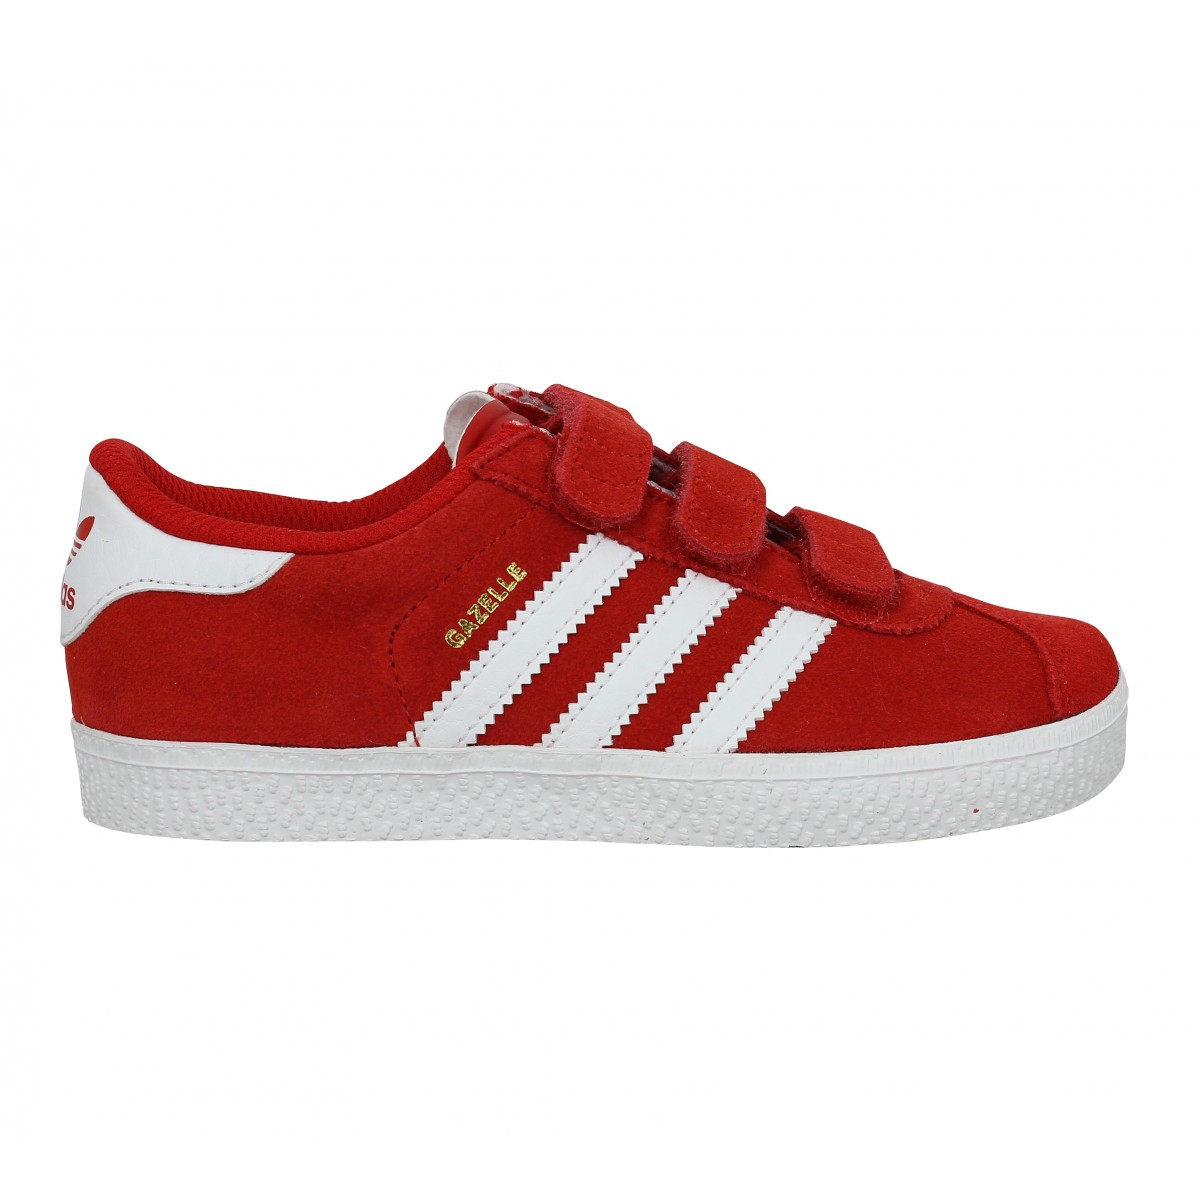 Adidas Gazelle baskets rouge